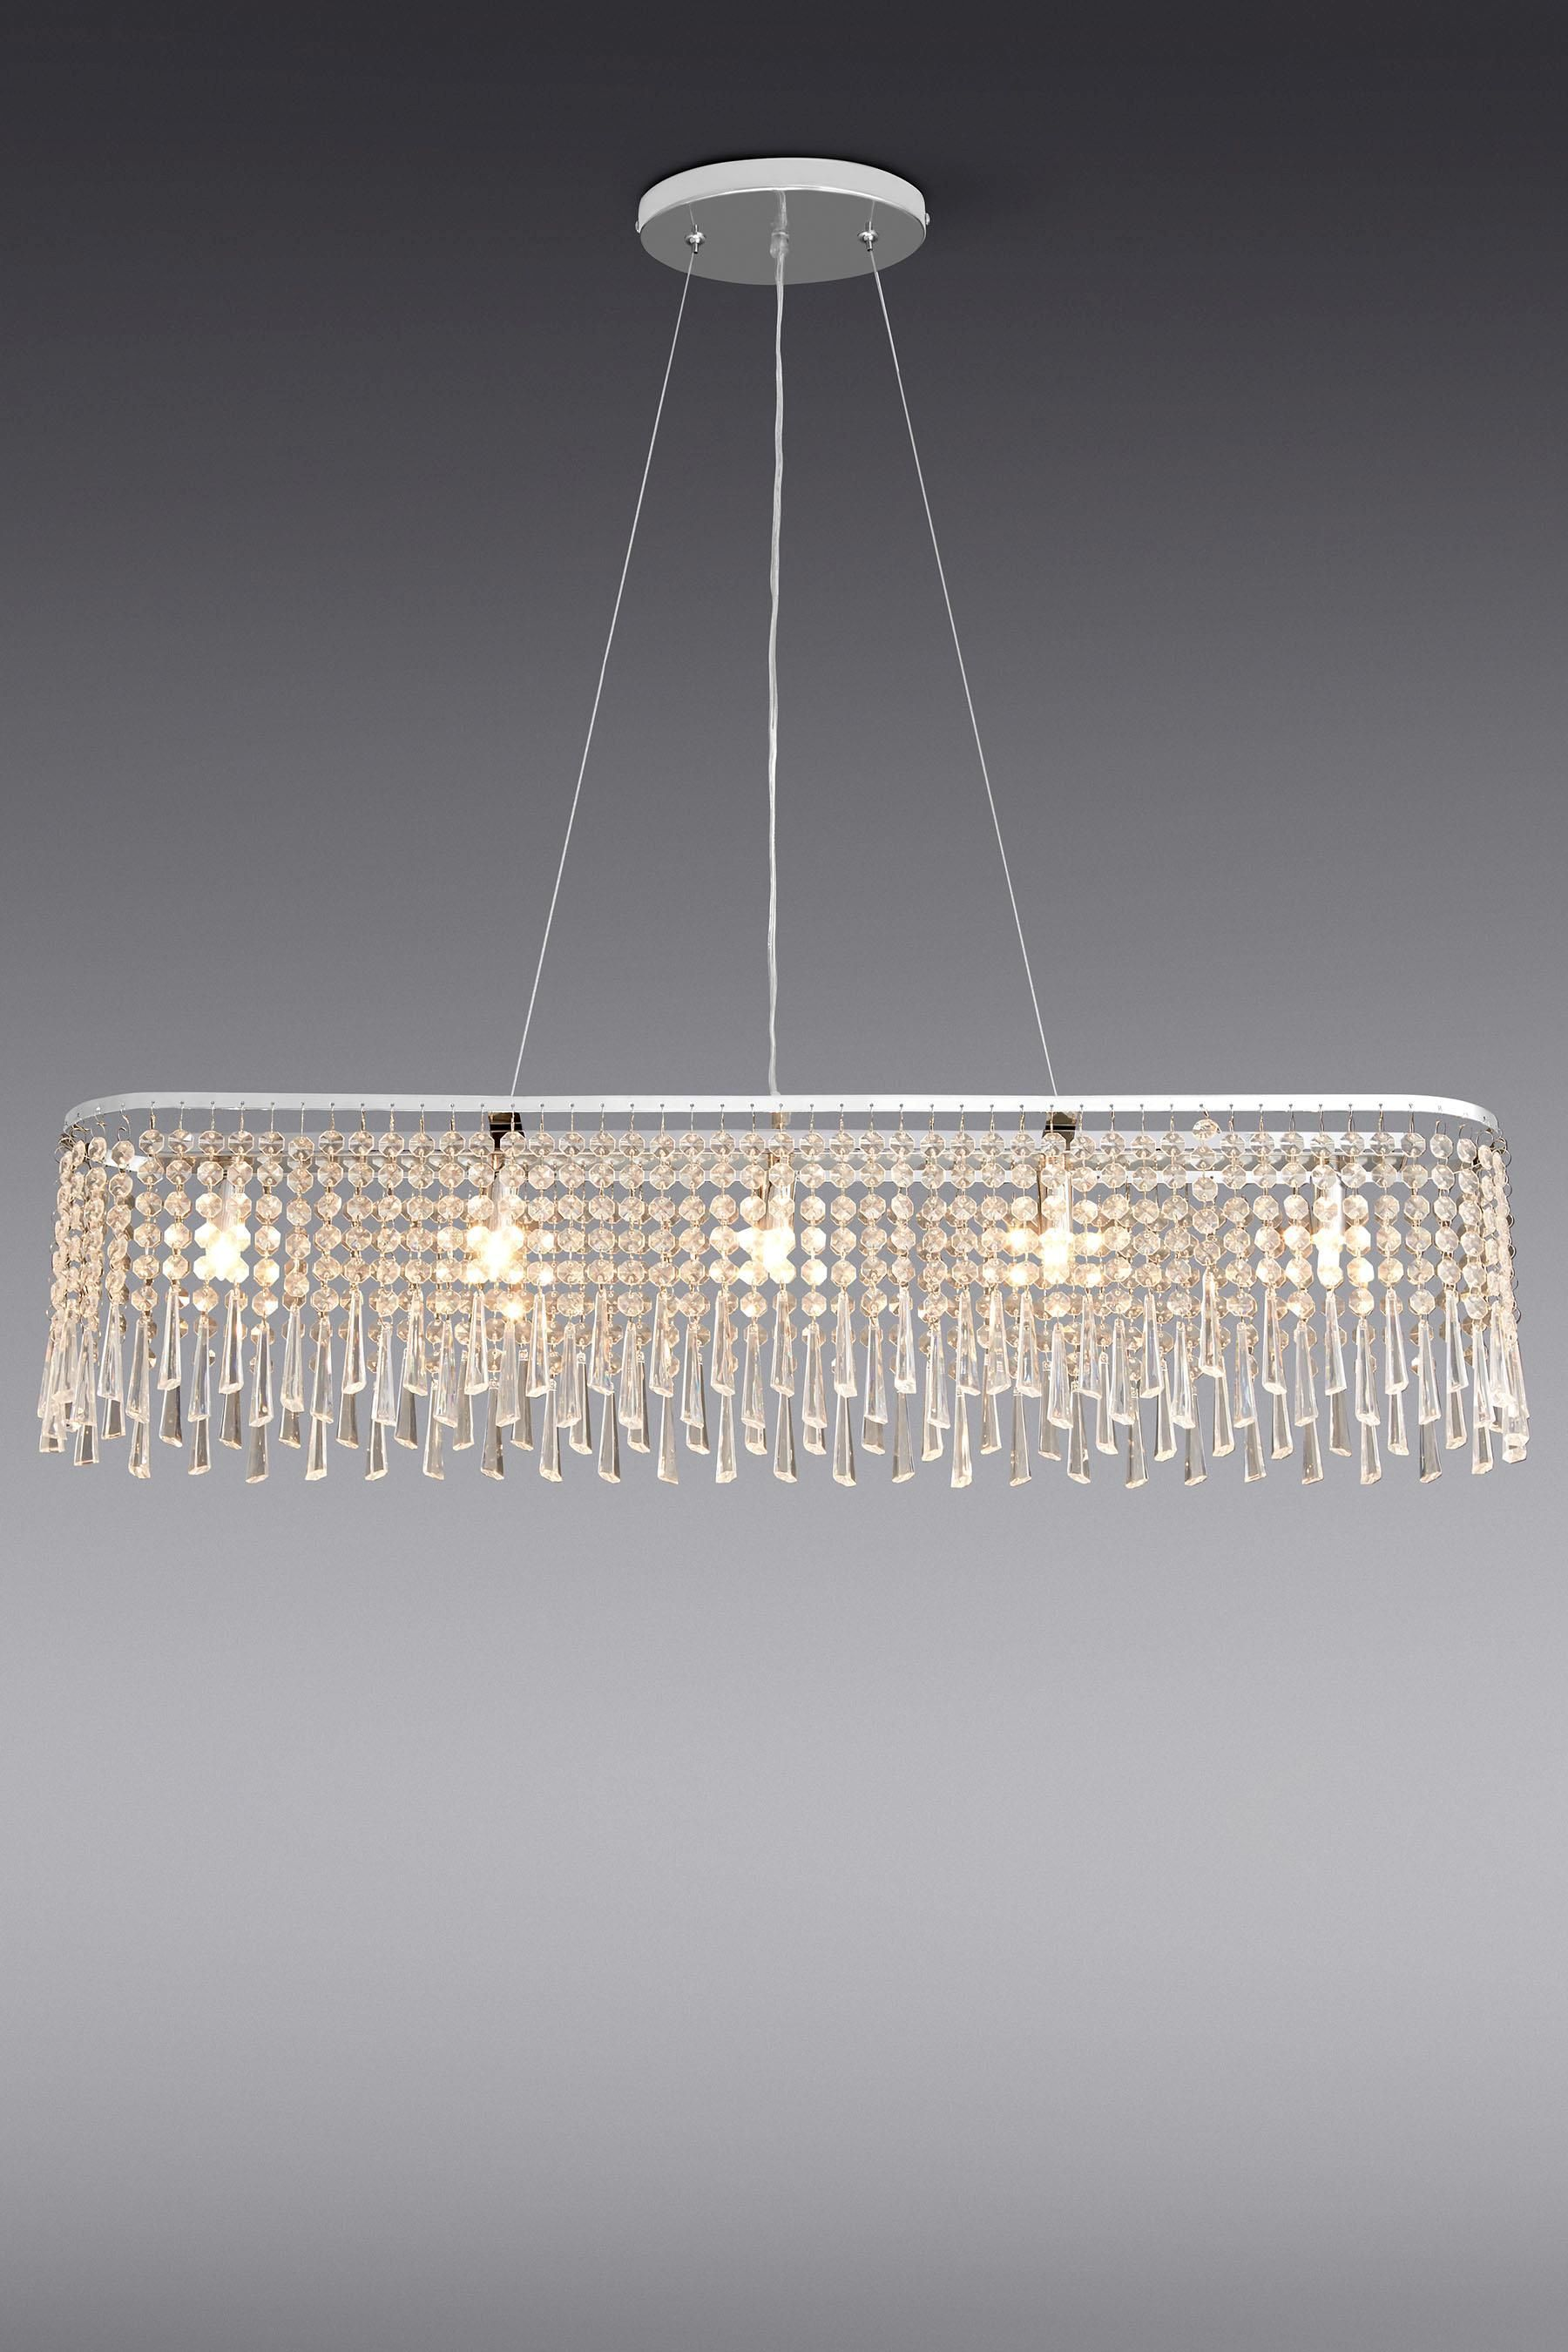 Buy lucy 5 light large beaded linear pendant from the next uk online shop